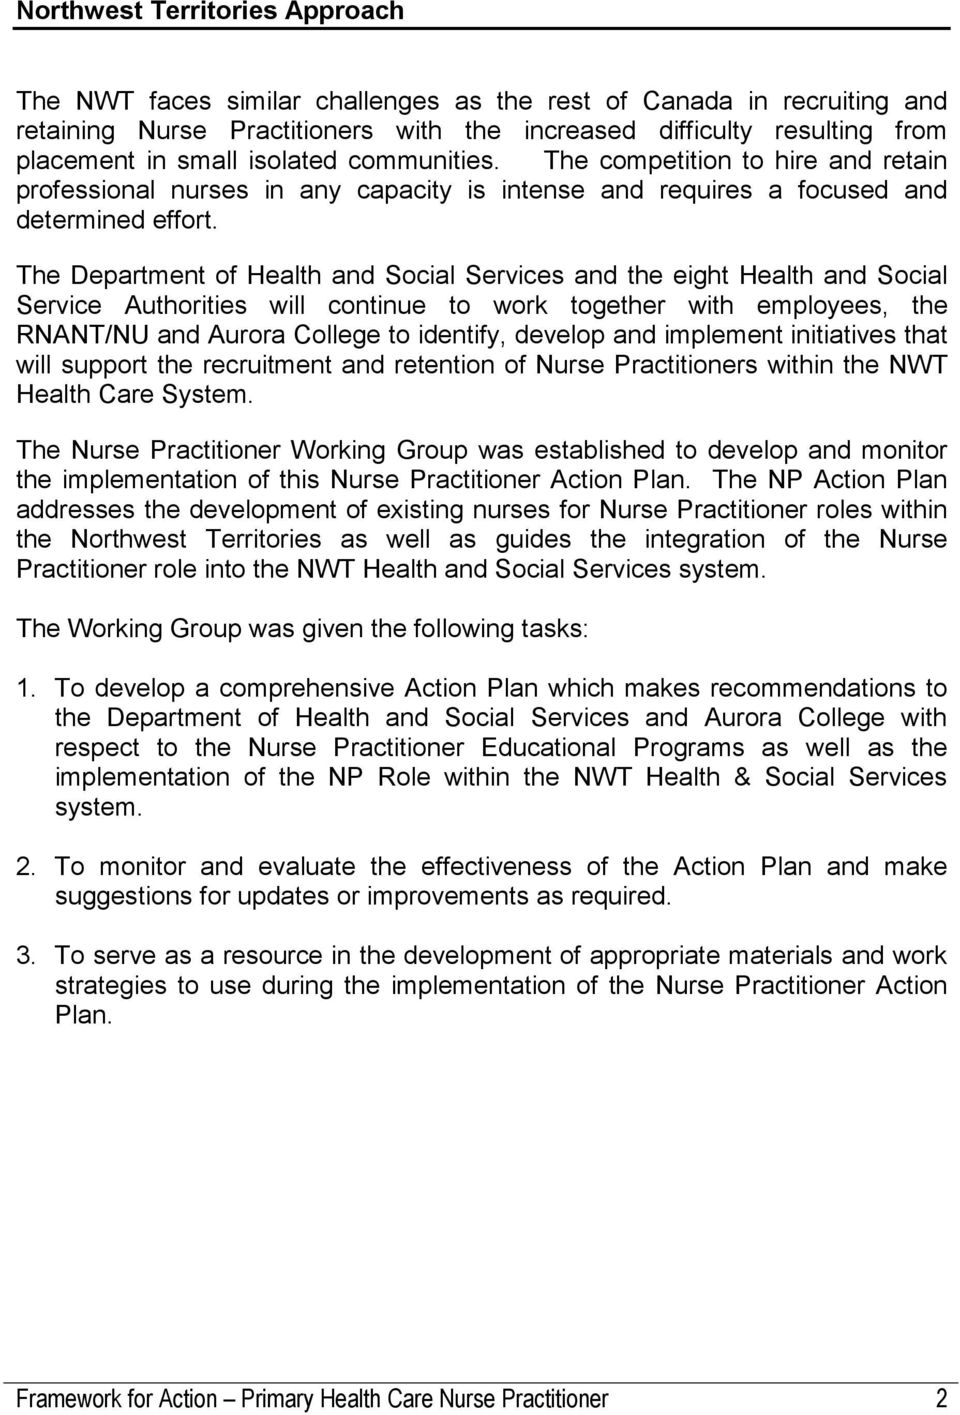 The Department of Health and Social Services and the eight Health and Social Service Authorities will continue to work together with employees, the RNANT/NU and Aurora College to identify, develop